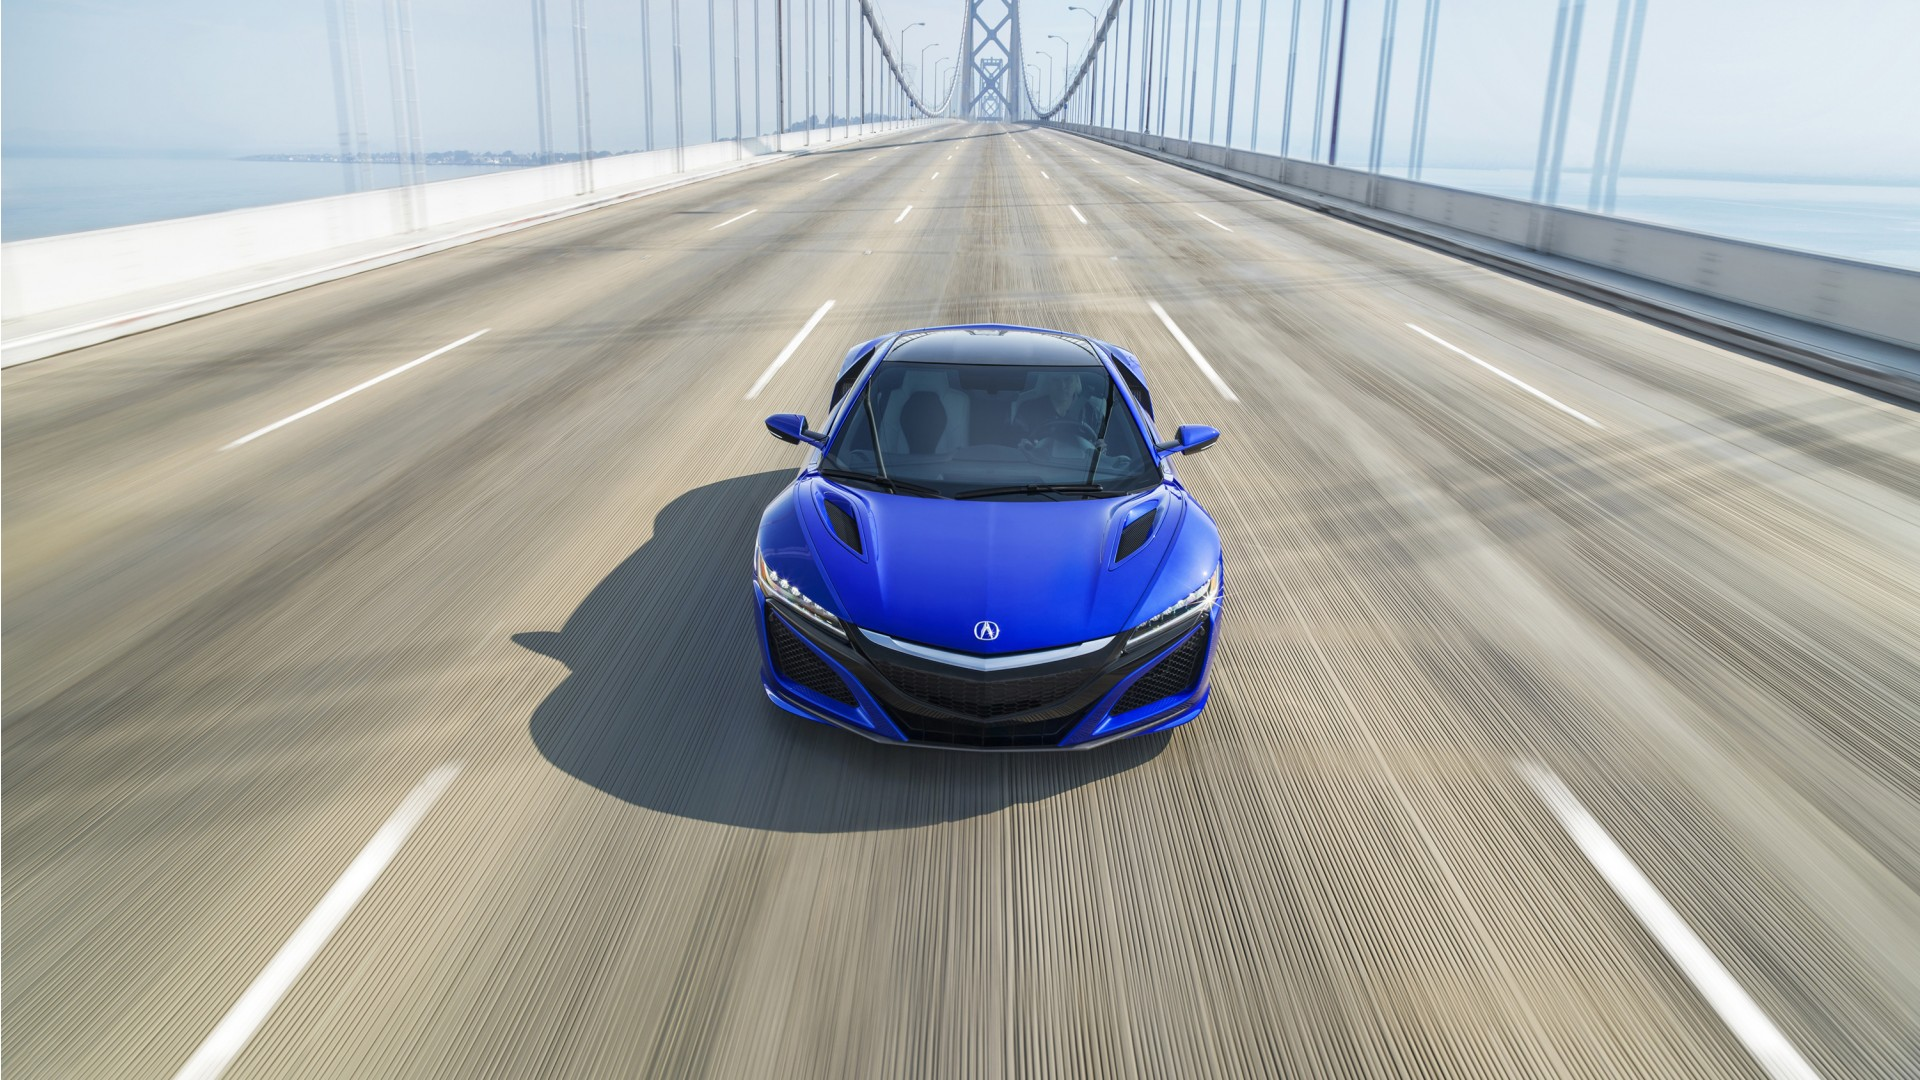 acura nsx 2017 wallpaper